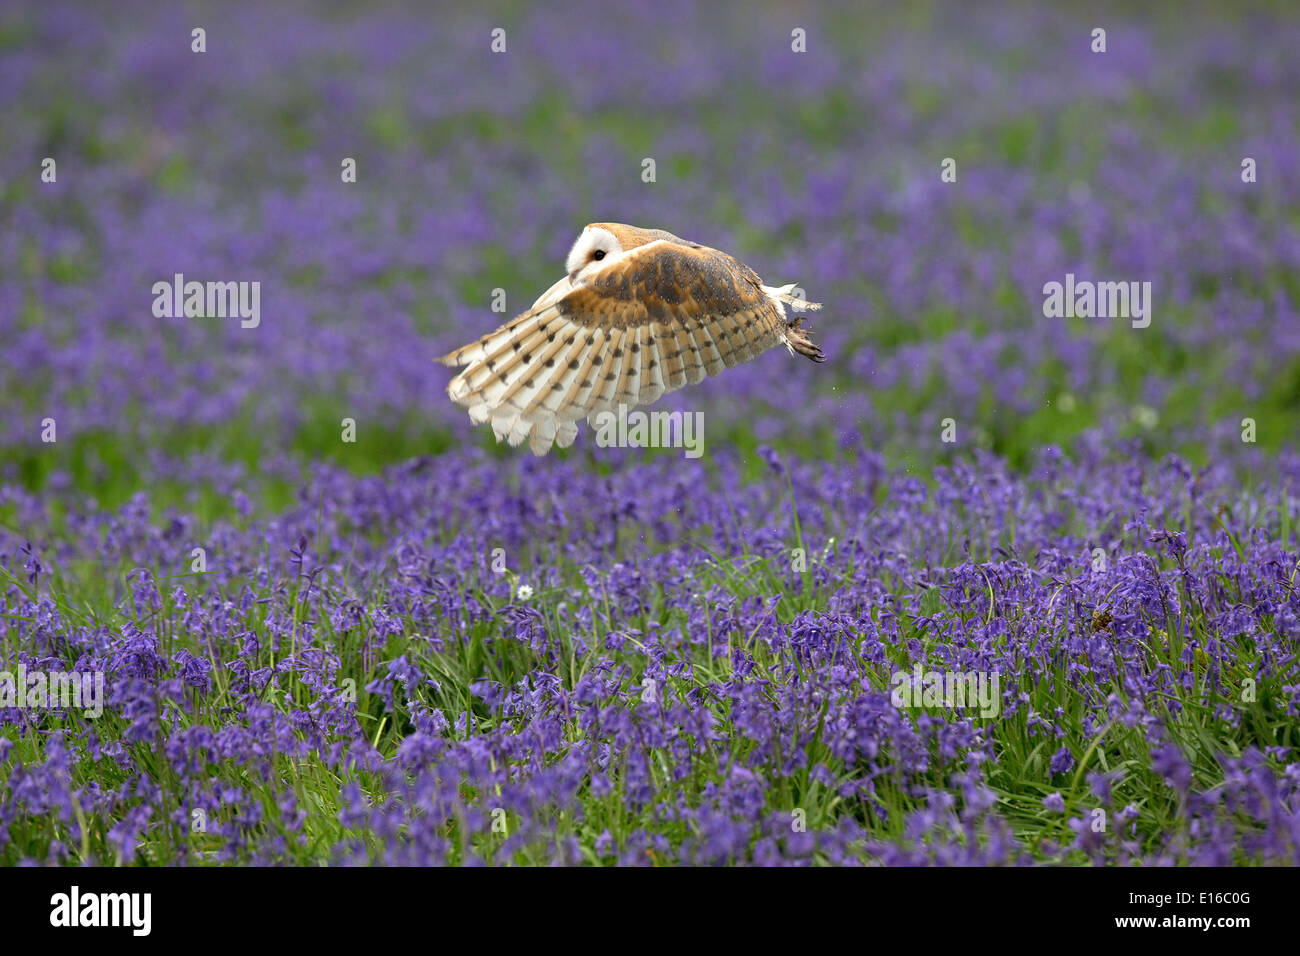 Barn Owl, Tyto alba in flight over bluebells - Stock Image